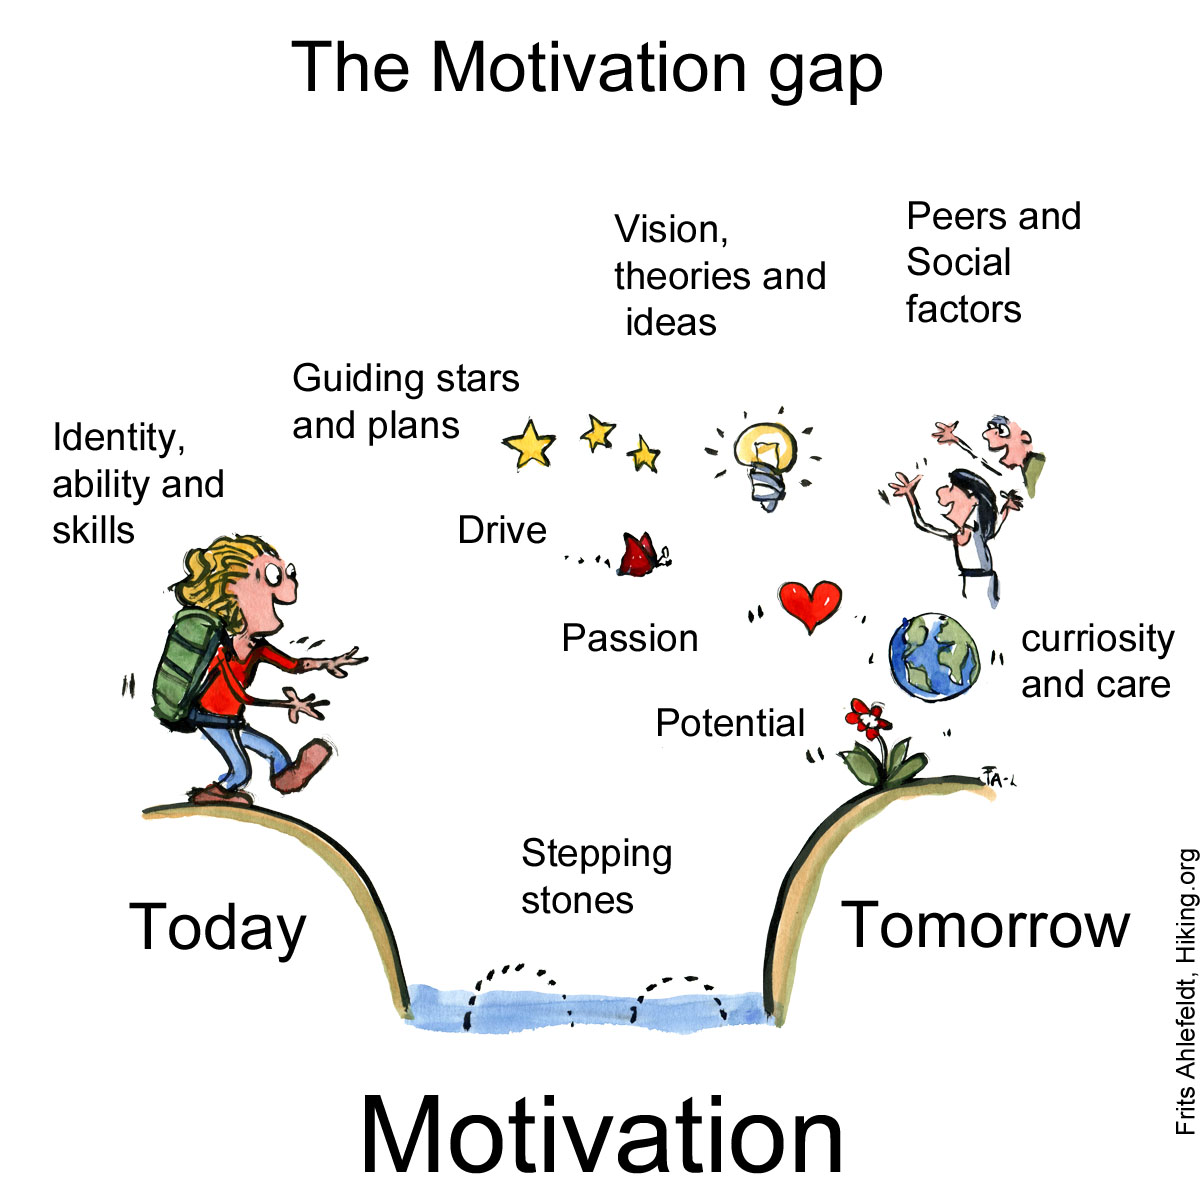 Drawing of a hiker crossing the motivation gap from today to where she wants to be tomorrow. Psychology illustration by Frits Ahlefeldt